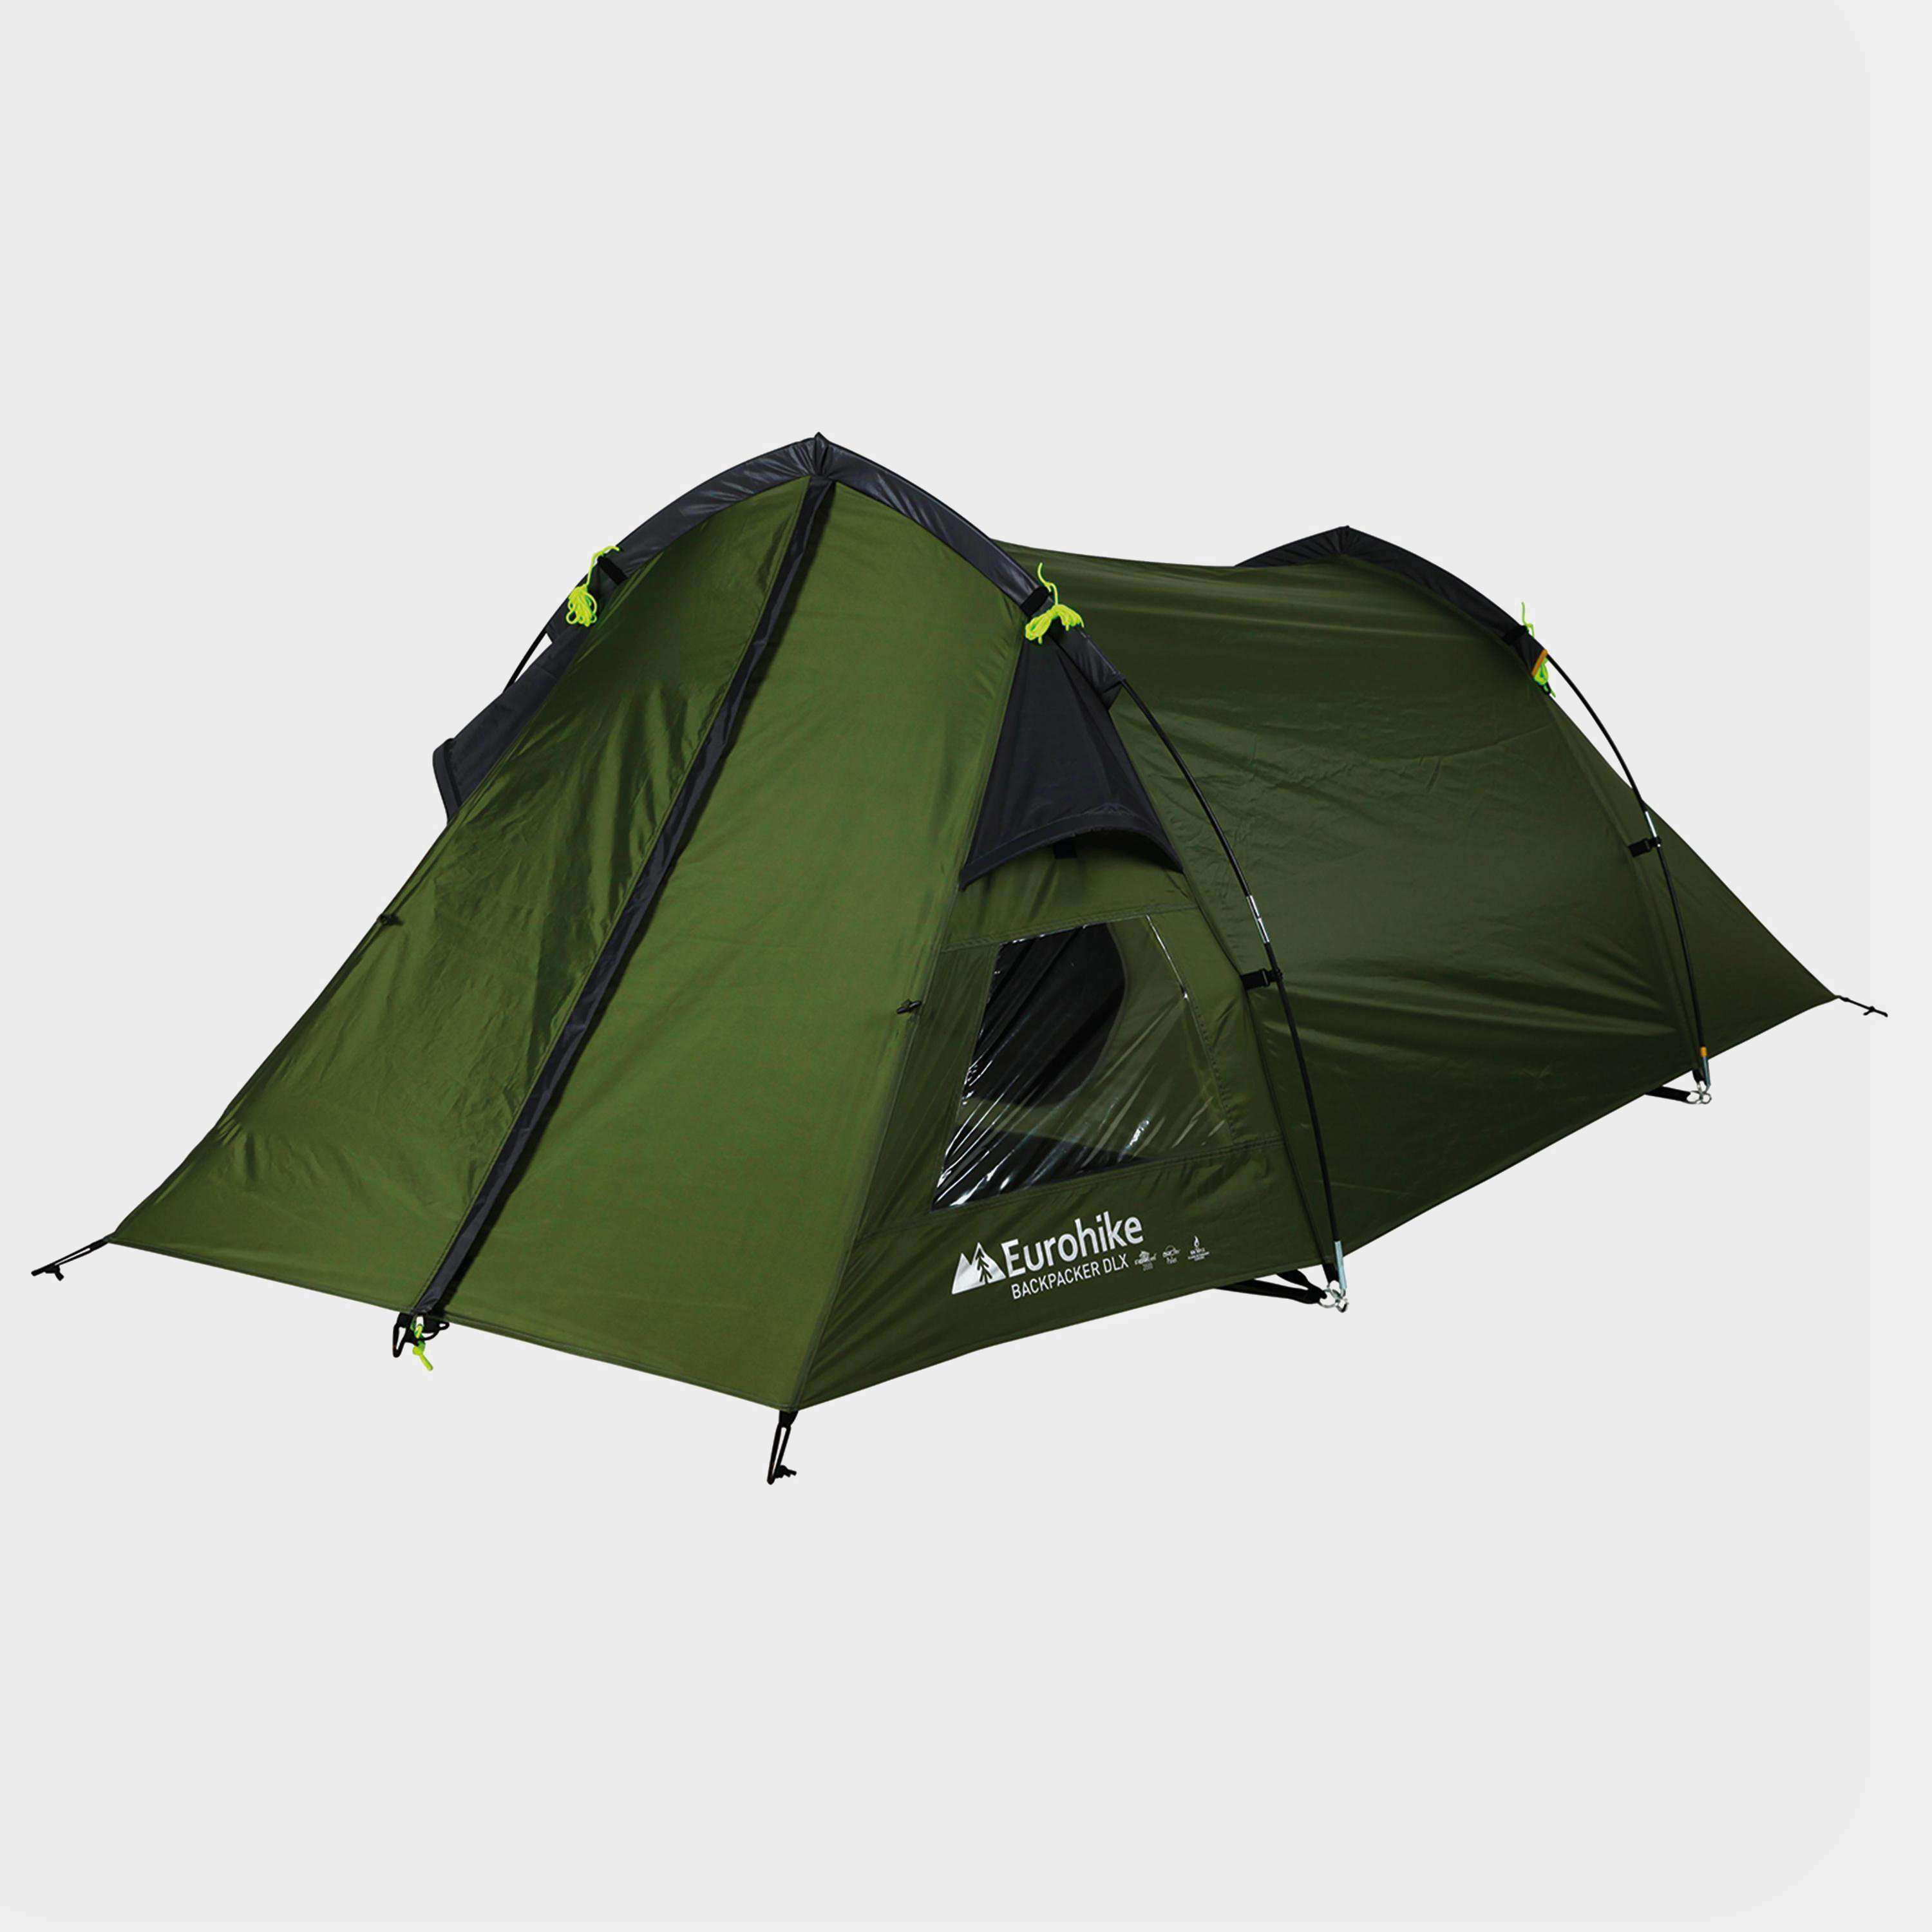 EUROHIKE Backpacker DLX 2 Man Tent